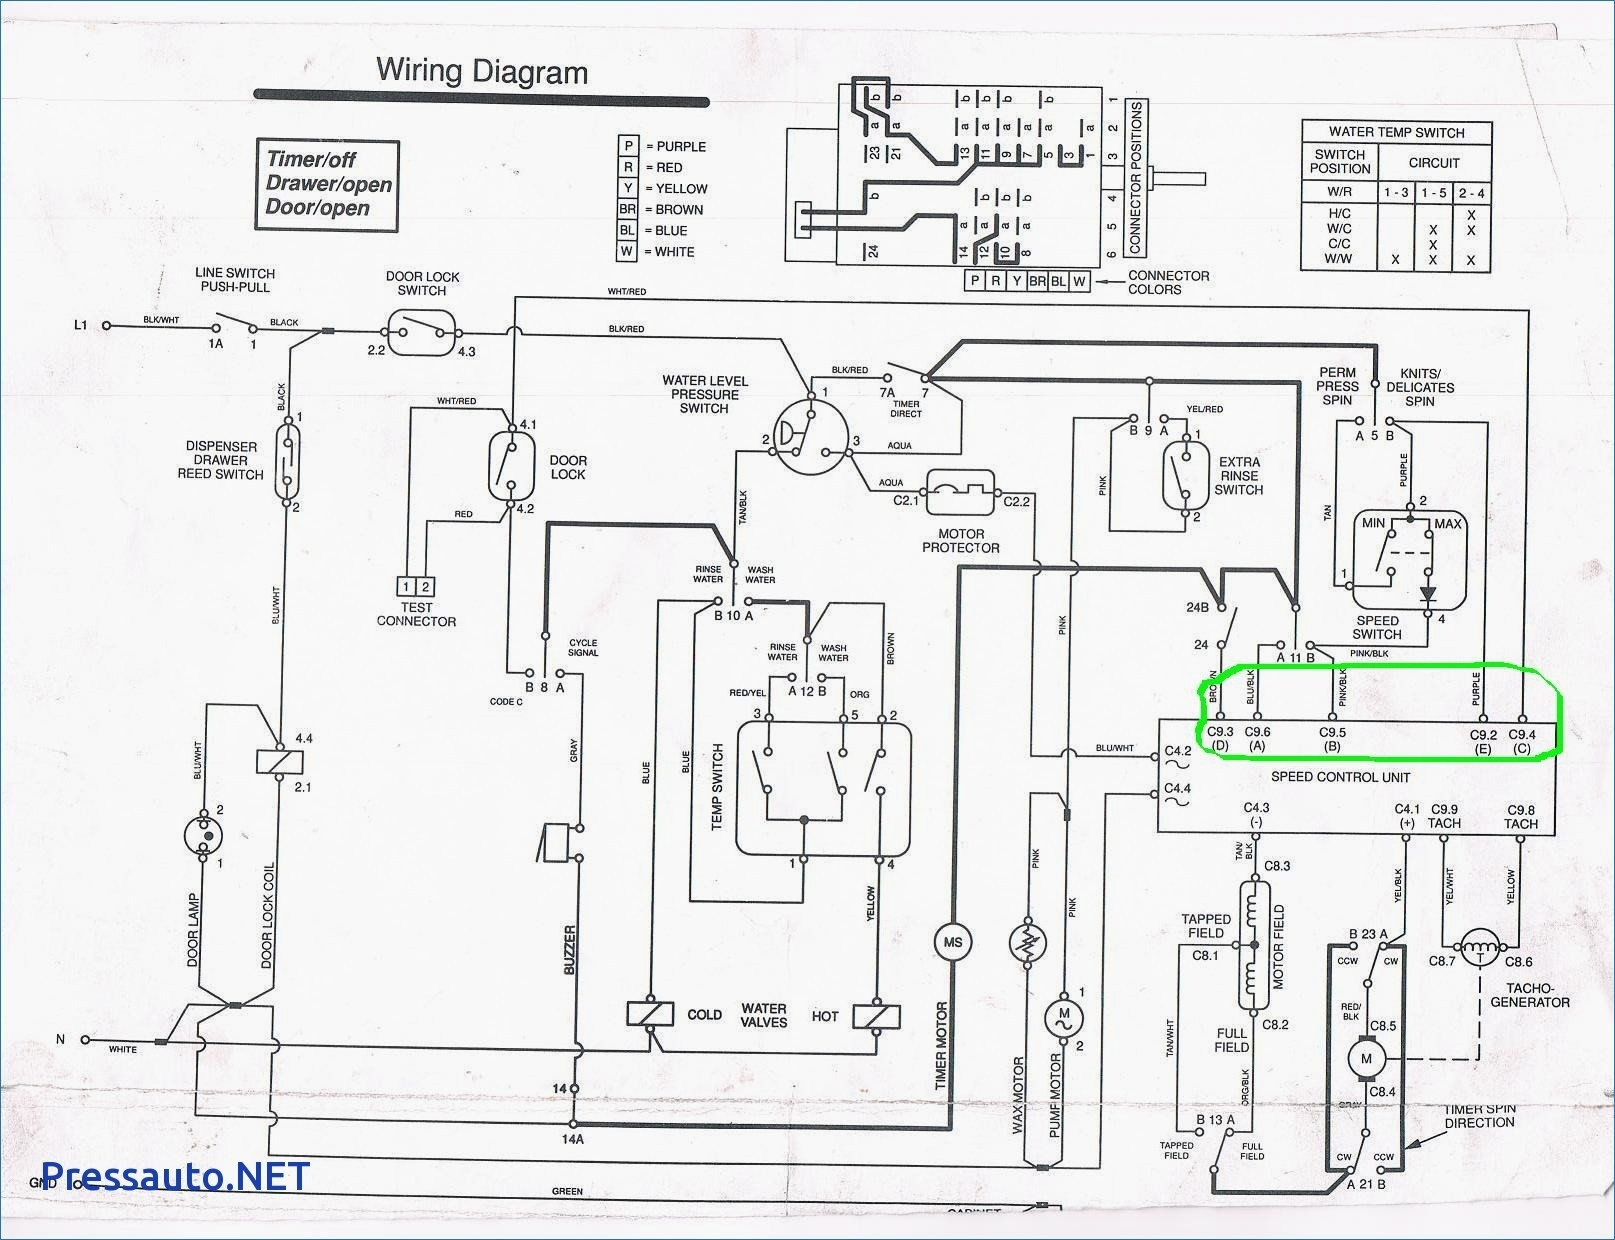 whirlpool washing machine electrical diagram